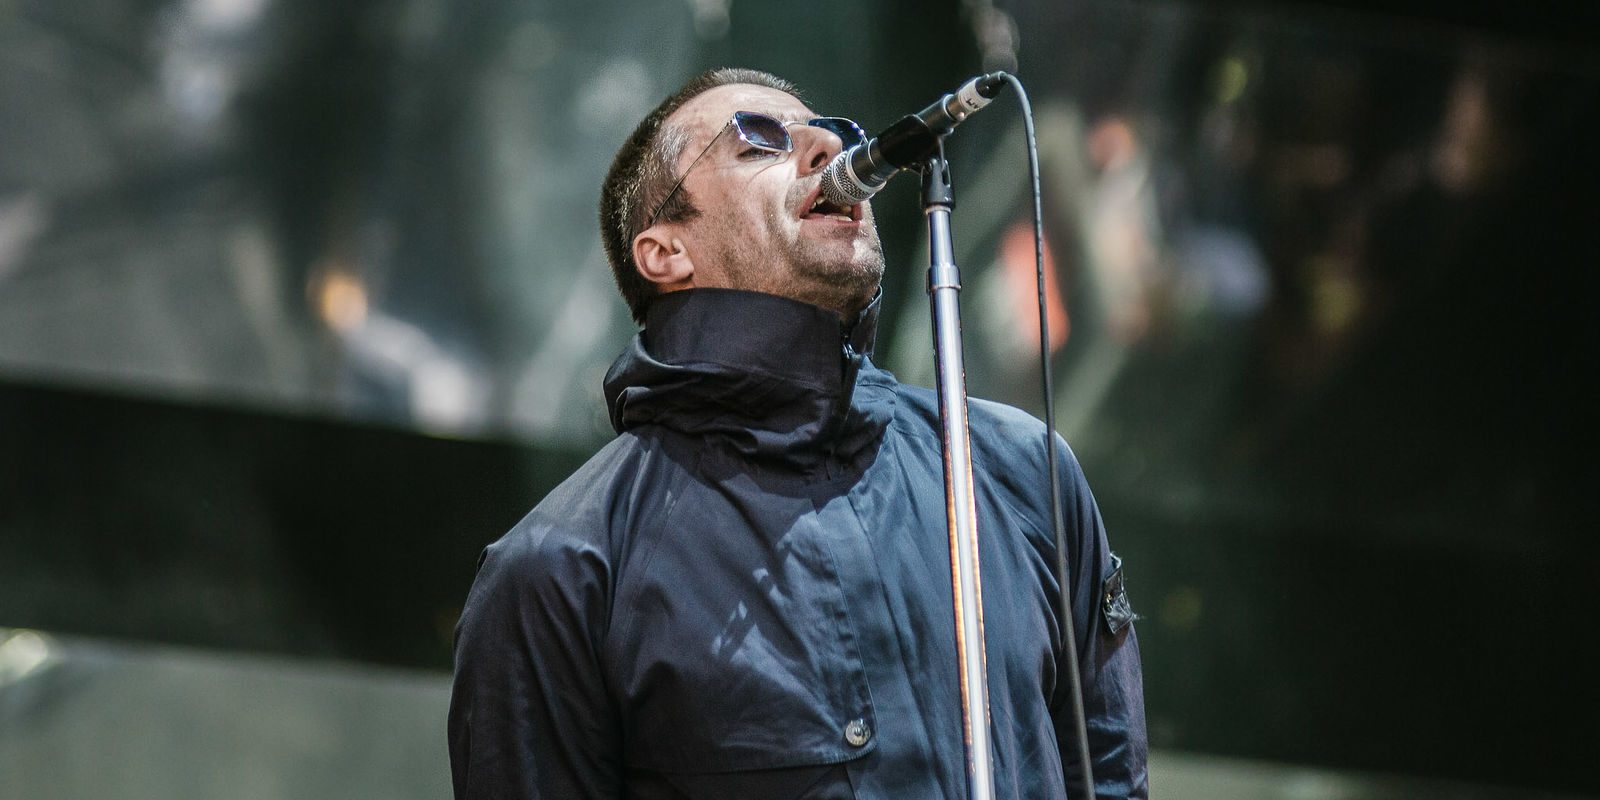 ONE OF US: el nuevo single de Liam Gallagher